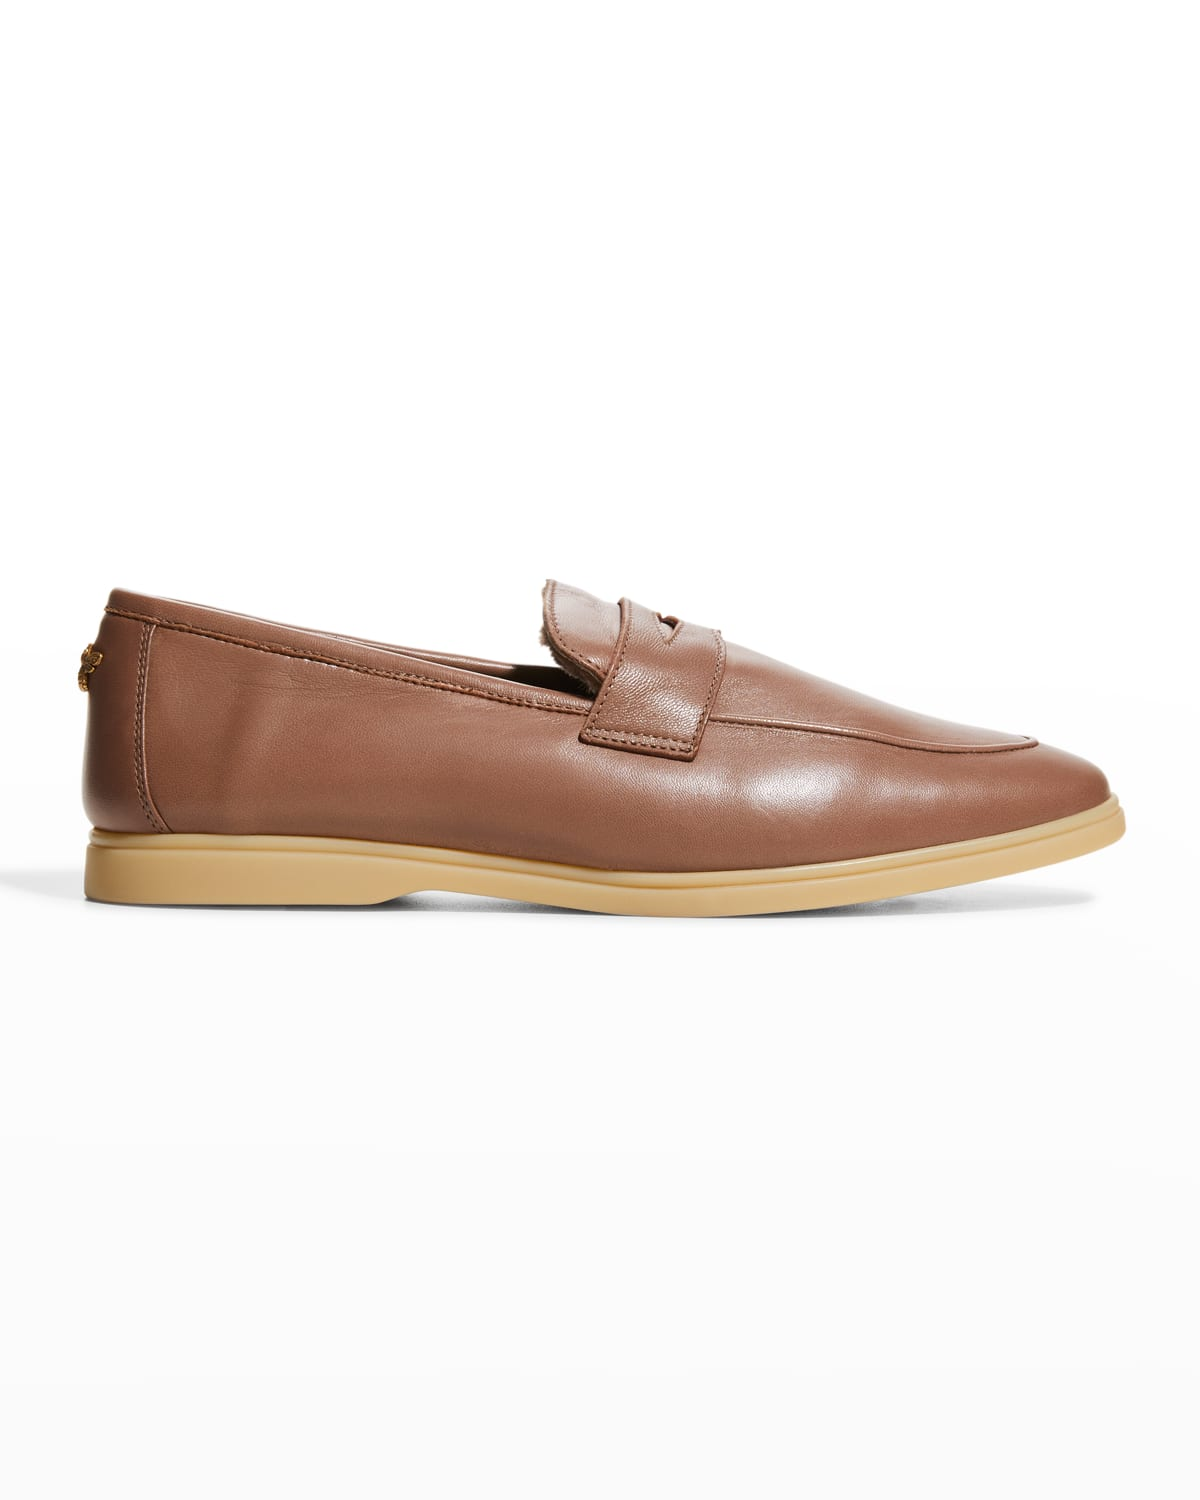 Leather Shearling Penny Loafers